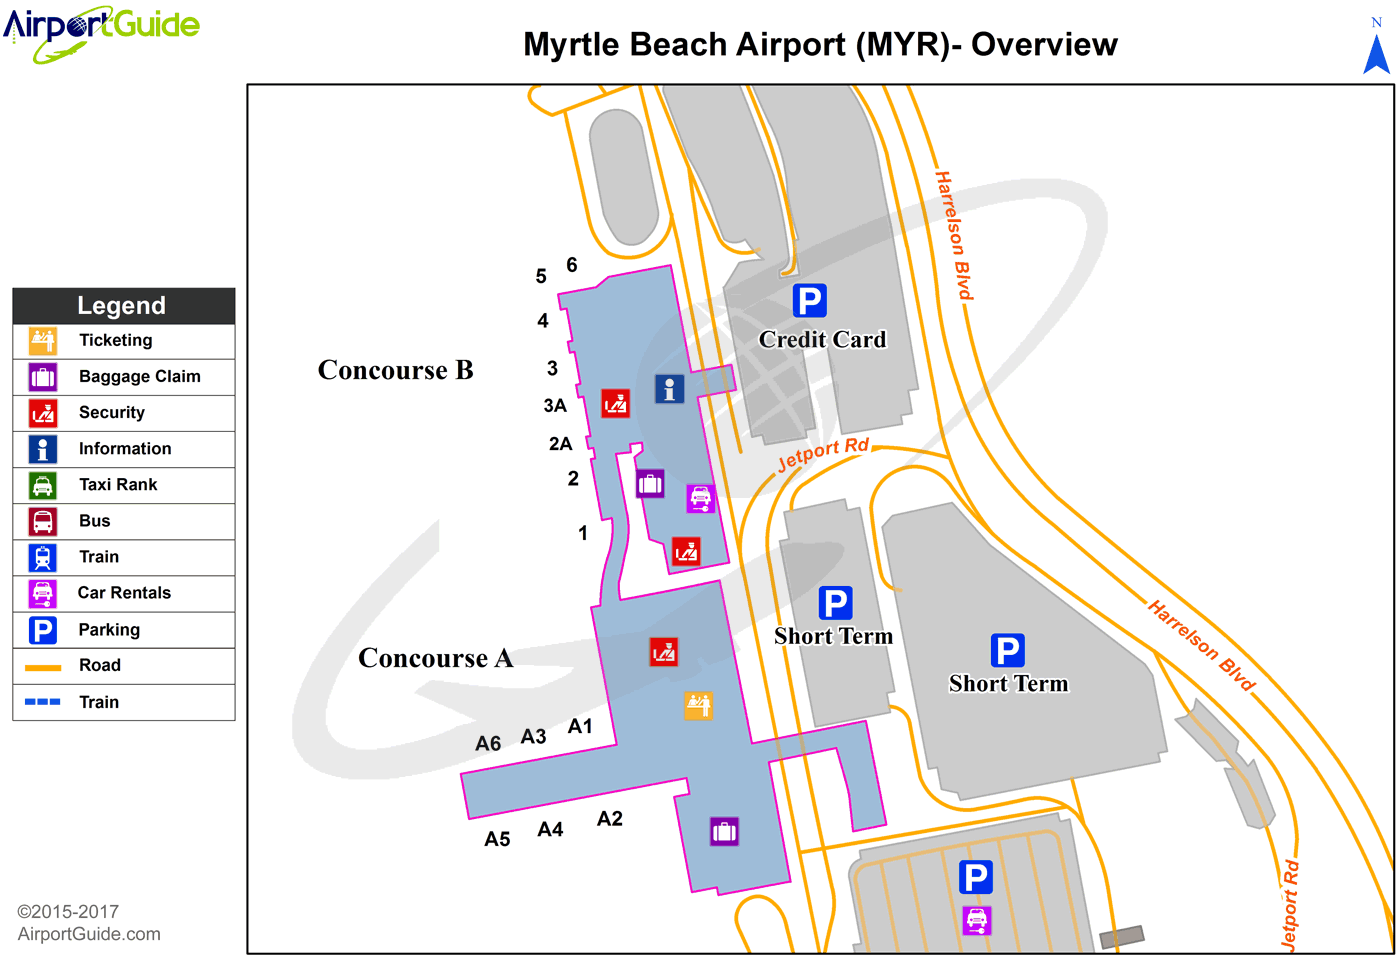 Myrtle Beach Airpiort